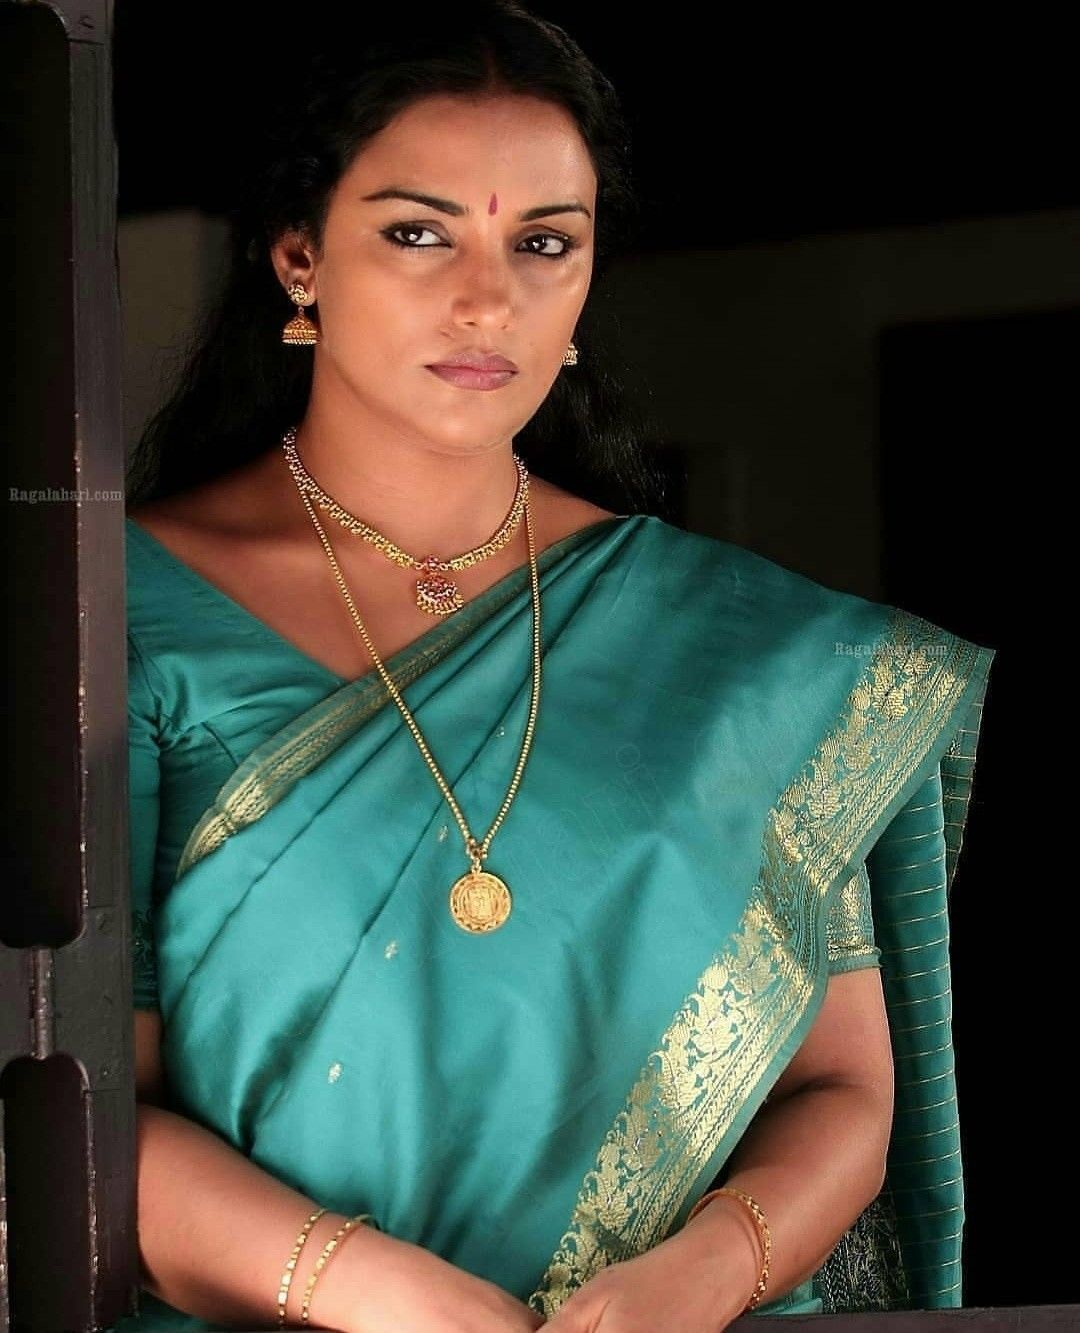 Pin by Shady05 on Actress in 2020 Swetha menon